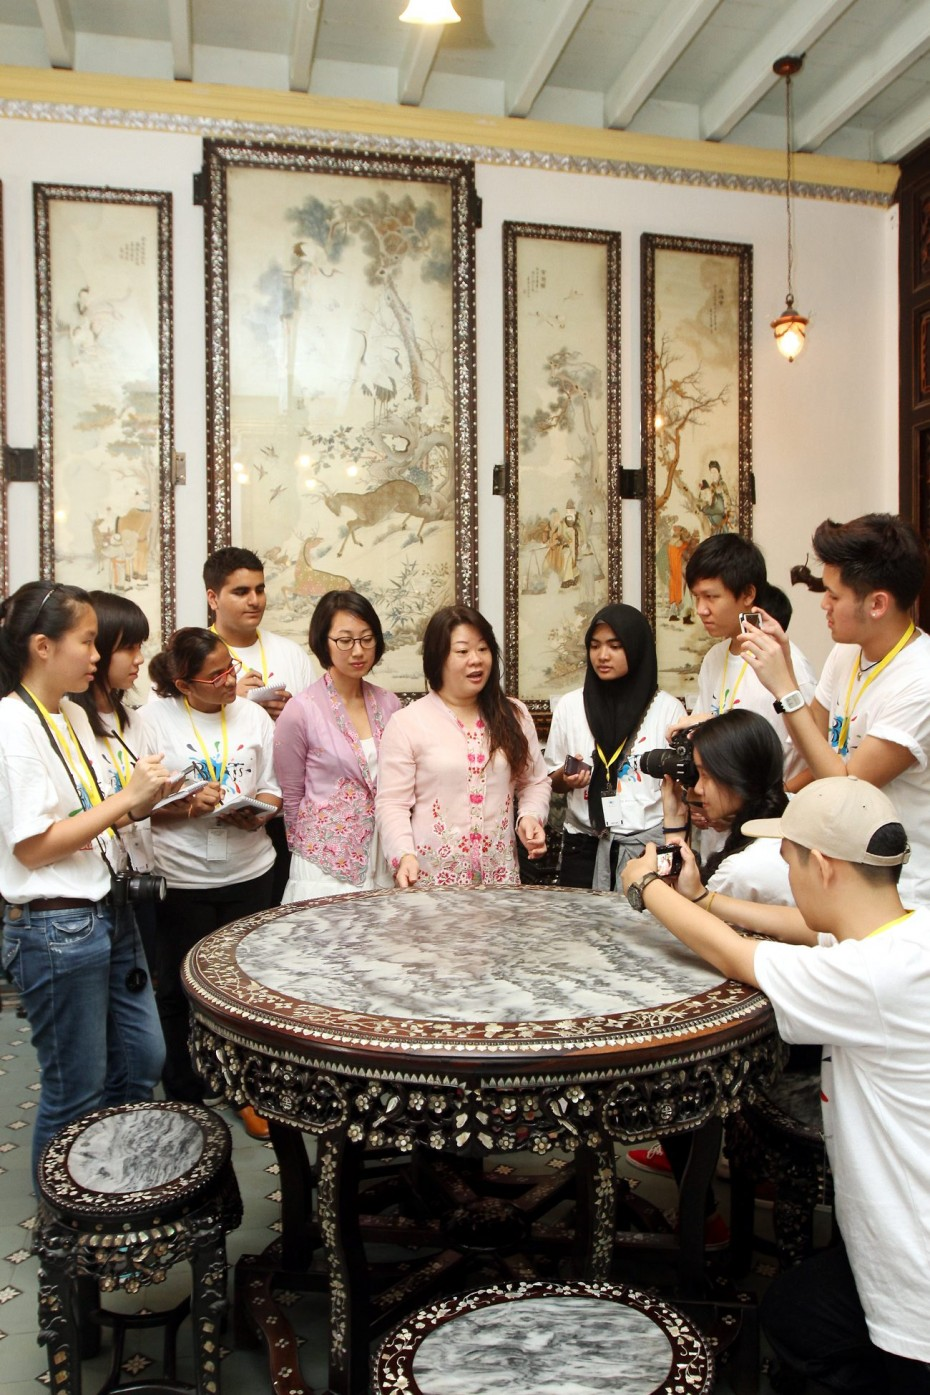 The participants from BRATs Malacca workshop interviewed Baba & Nyonya Heritage Museum curator, Melissa Chan and lead tour guide, Christina Ong. The house, having been in Chan's family for five generations, was turned into a museum in 1985 and it showcases an array of furniture and traditional costumes to provide insight into the lifestyle of wealthy Peranakan families in the past. SAMUEL ONG / THE STAR, 18TH SEPTEMBER 2014.